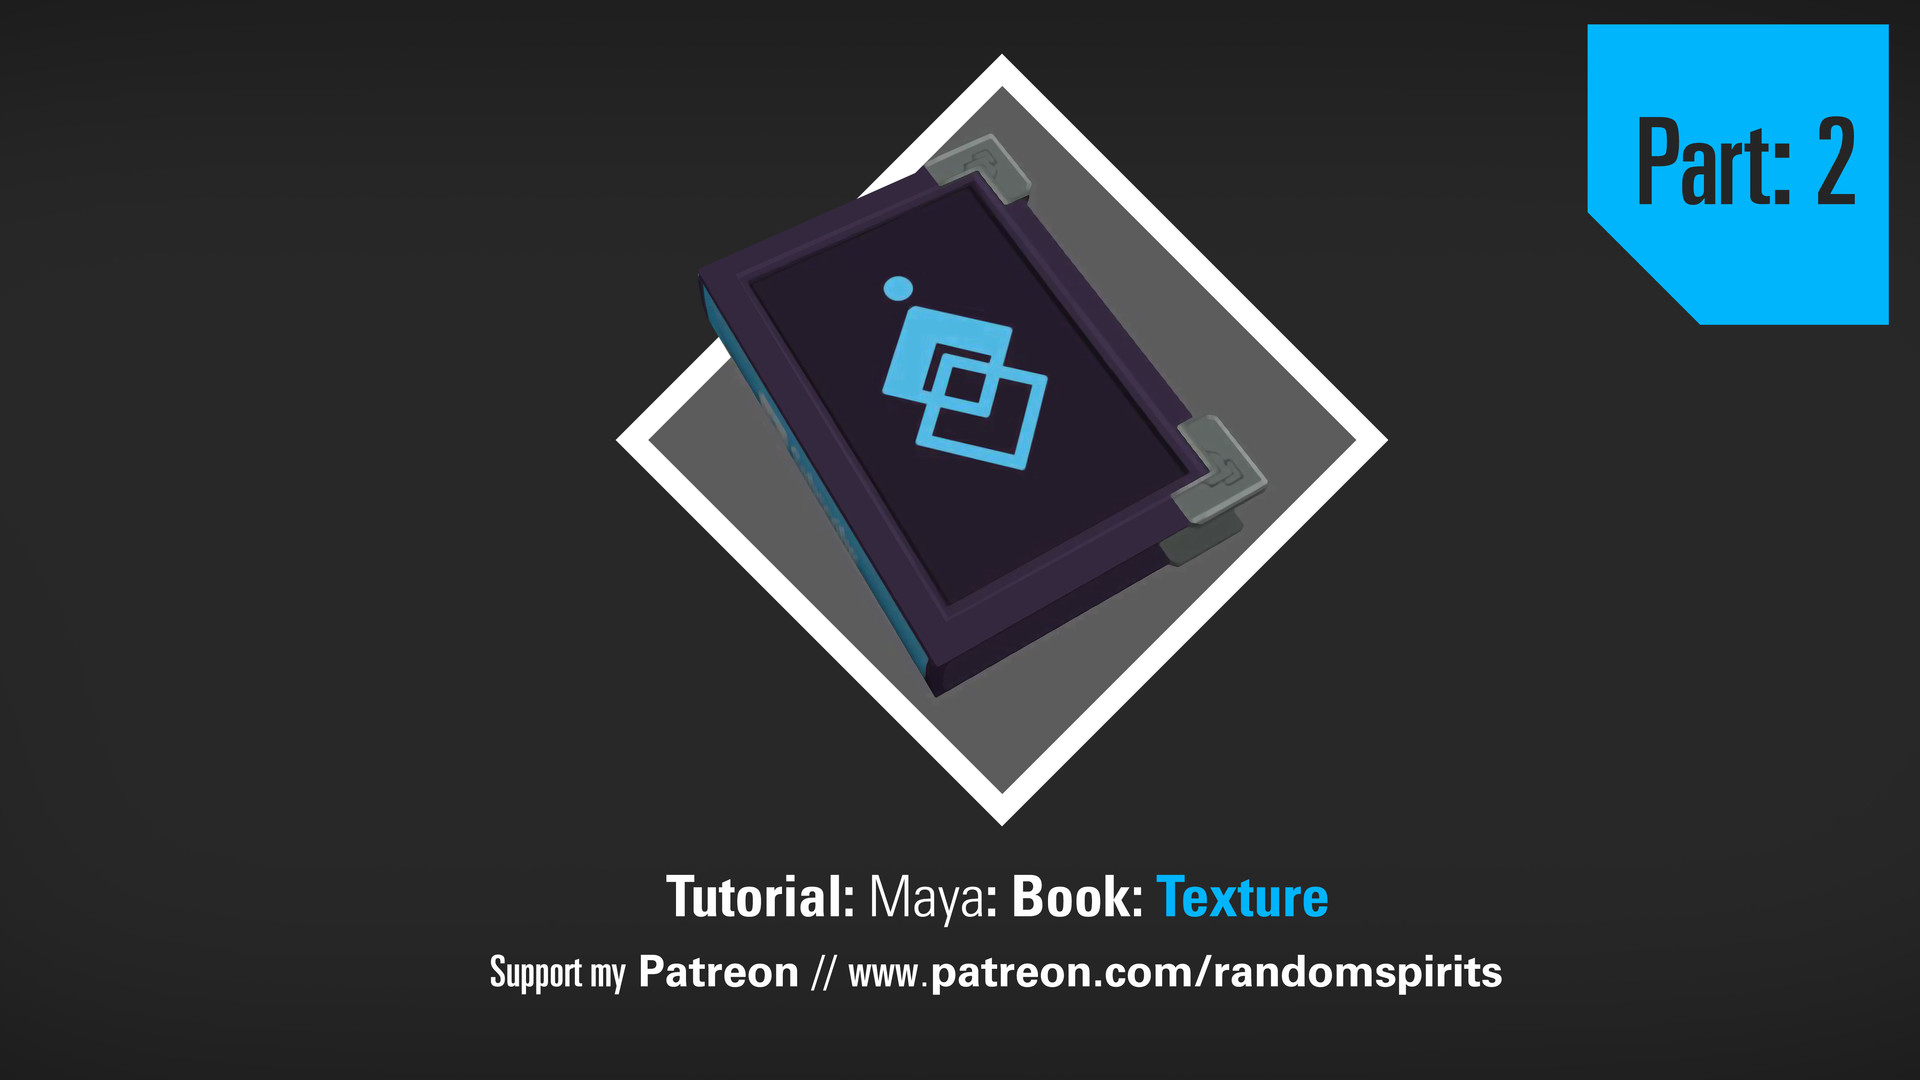 Tim kaminski tutorial maya book p2